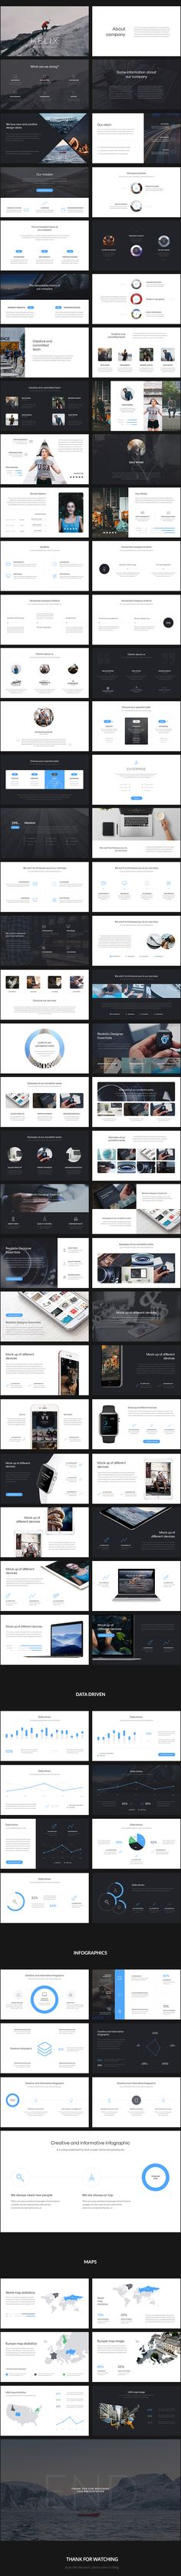 Helix Keynote/PowerPoint Presentation on Behance